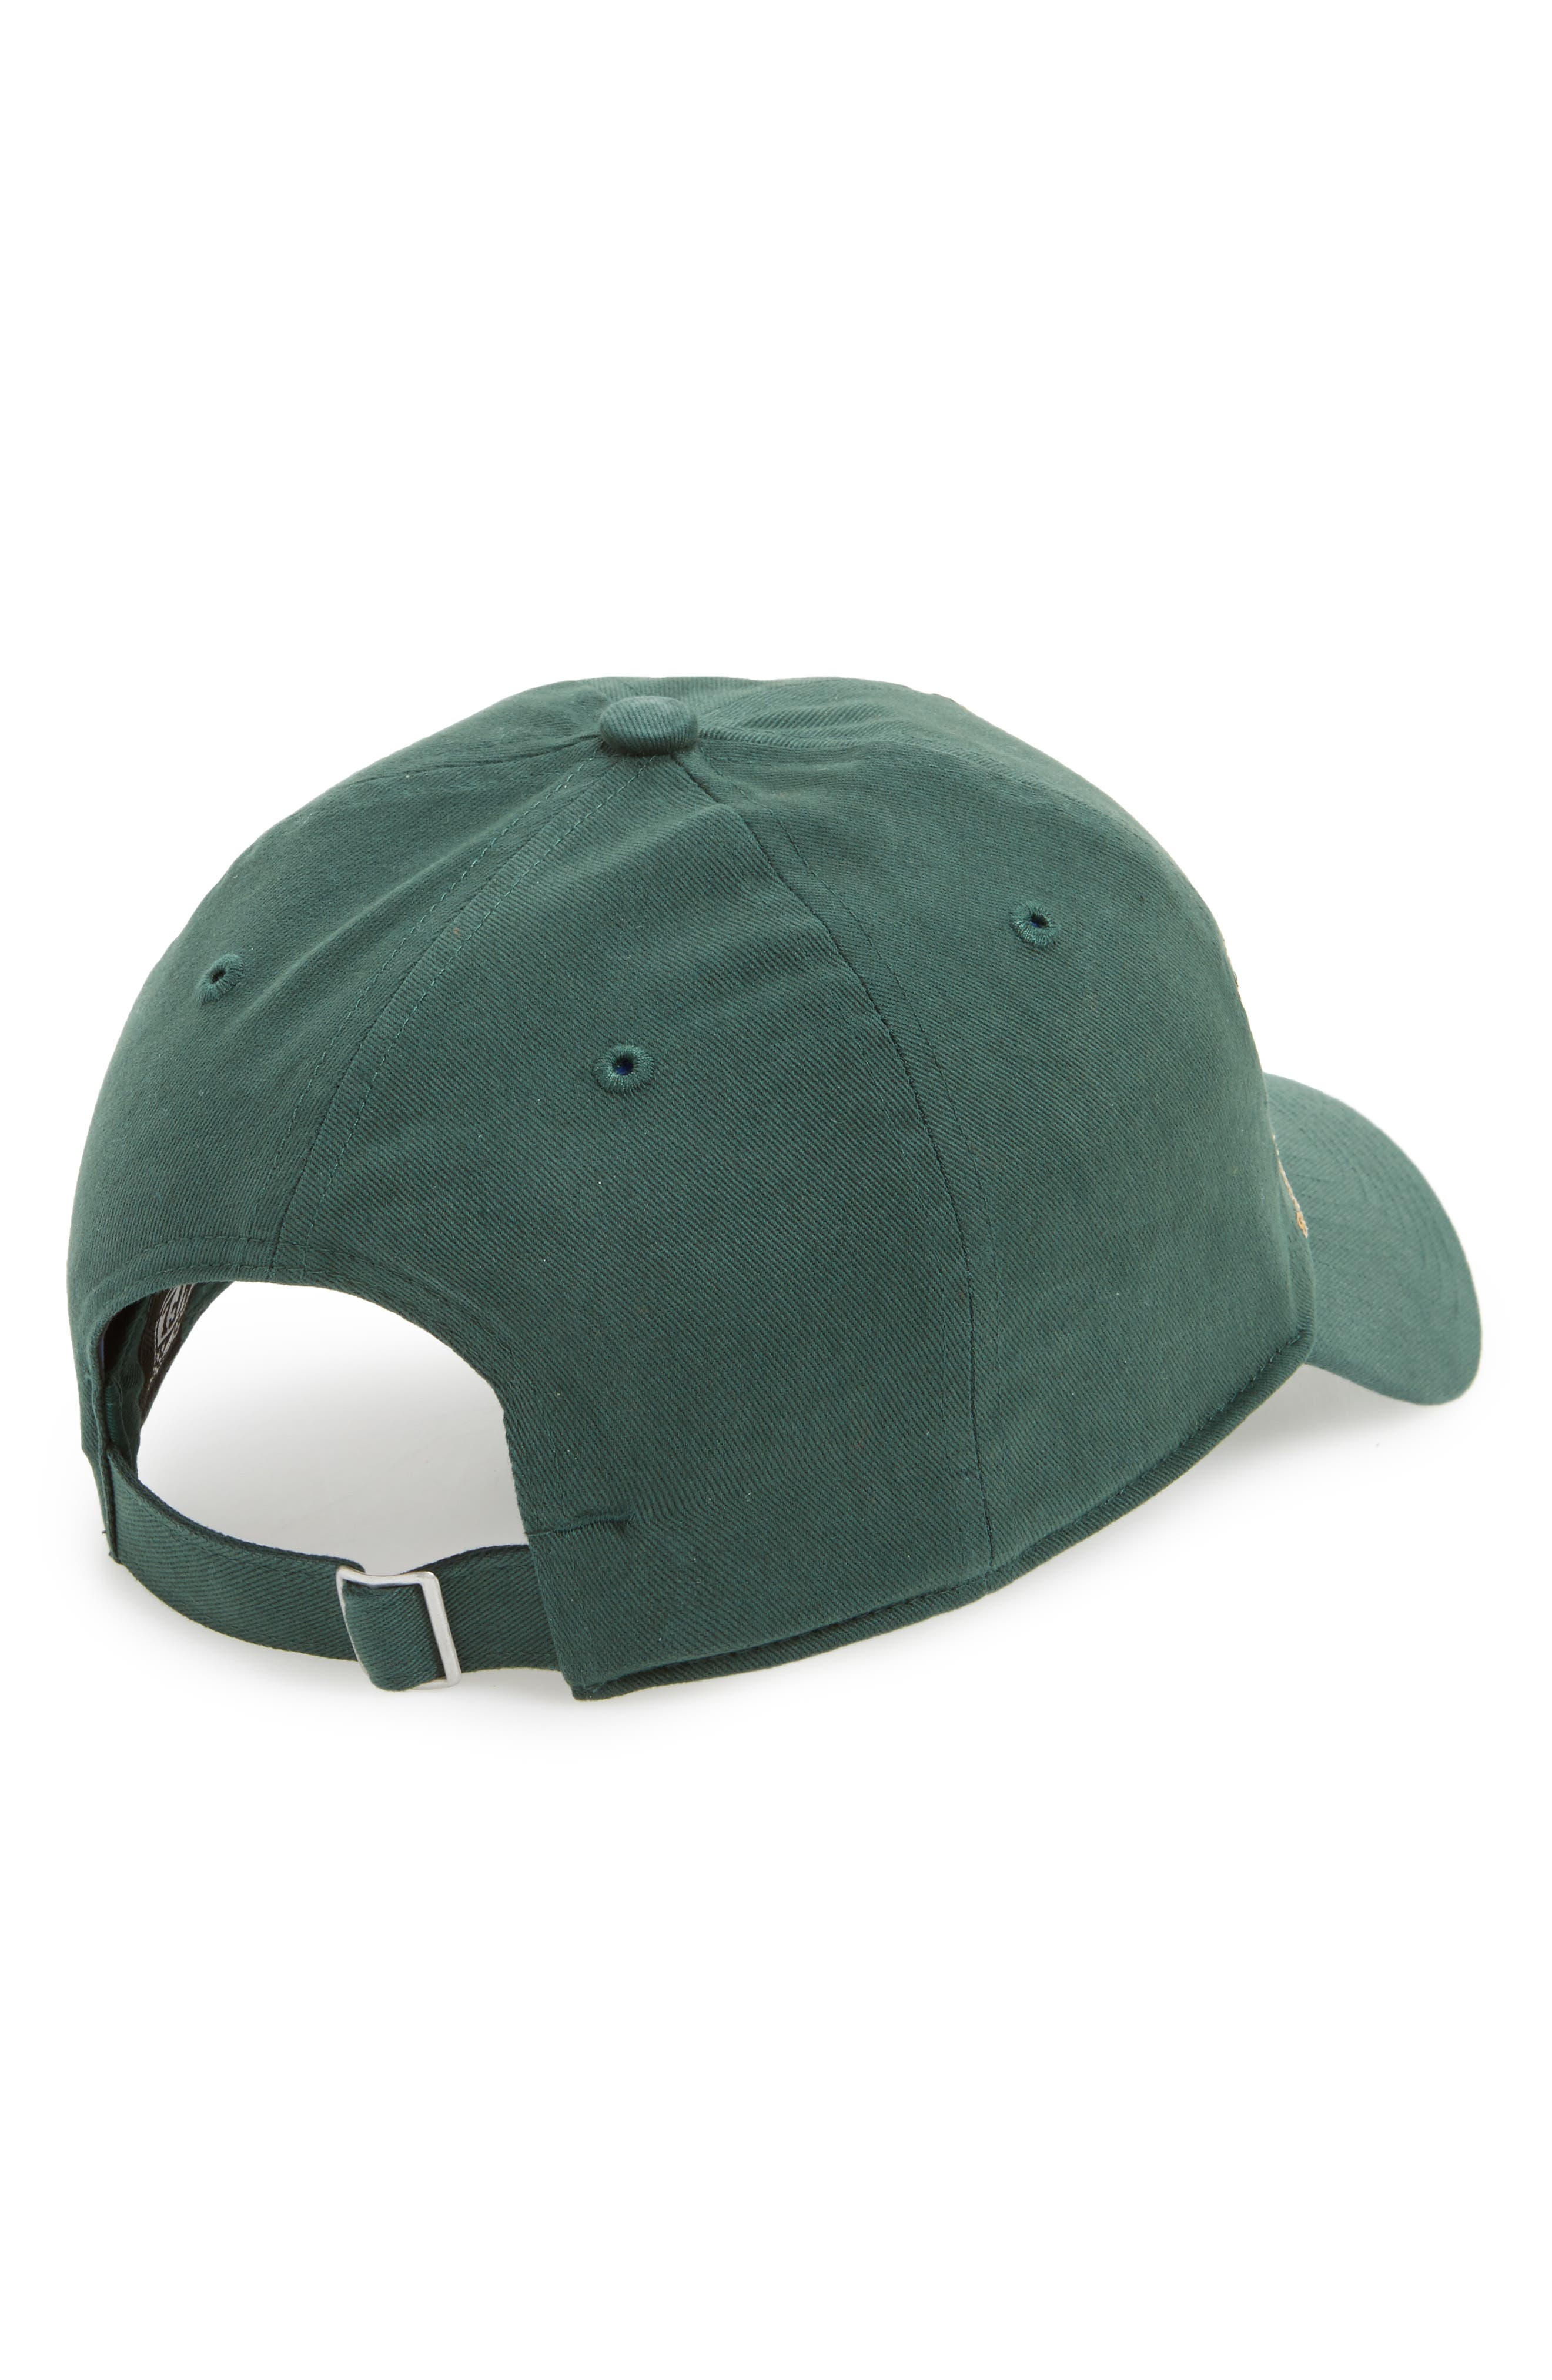 Alternate Image 2  - '47 Green Bay Packers Sparkle Cap